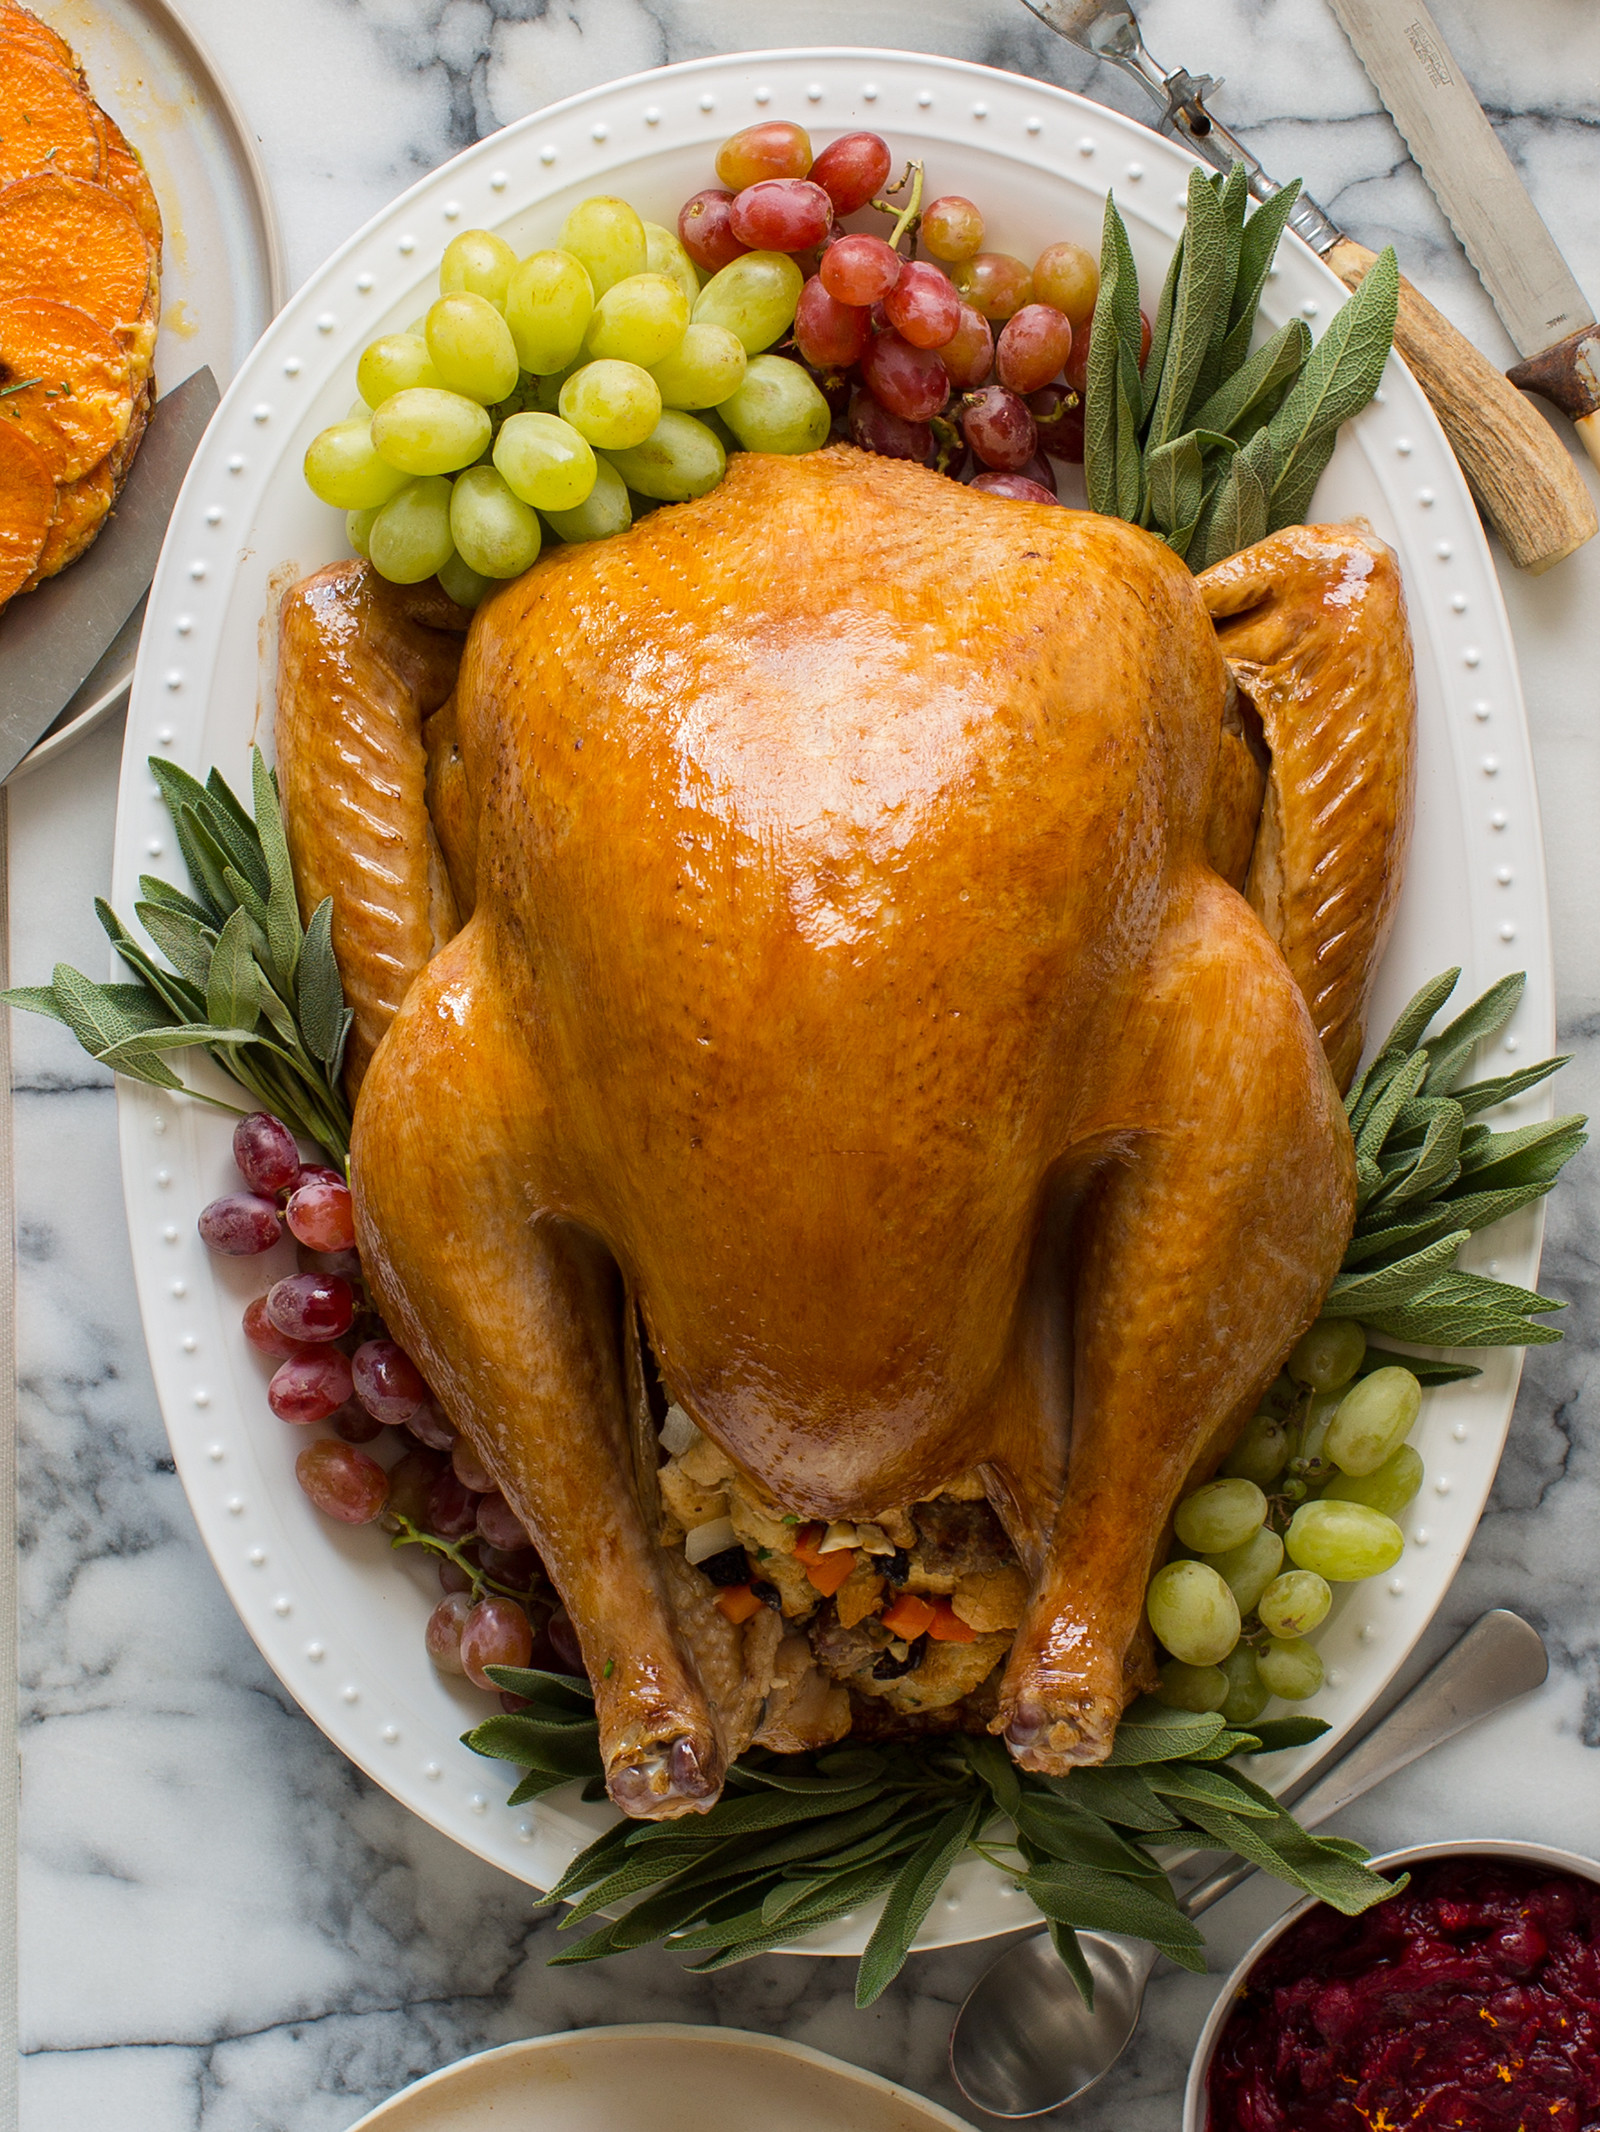 Turkey Picture For Thanksgiving  Citrus and Herb Roasted Turkey Thanksgiving